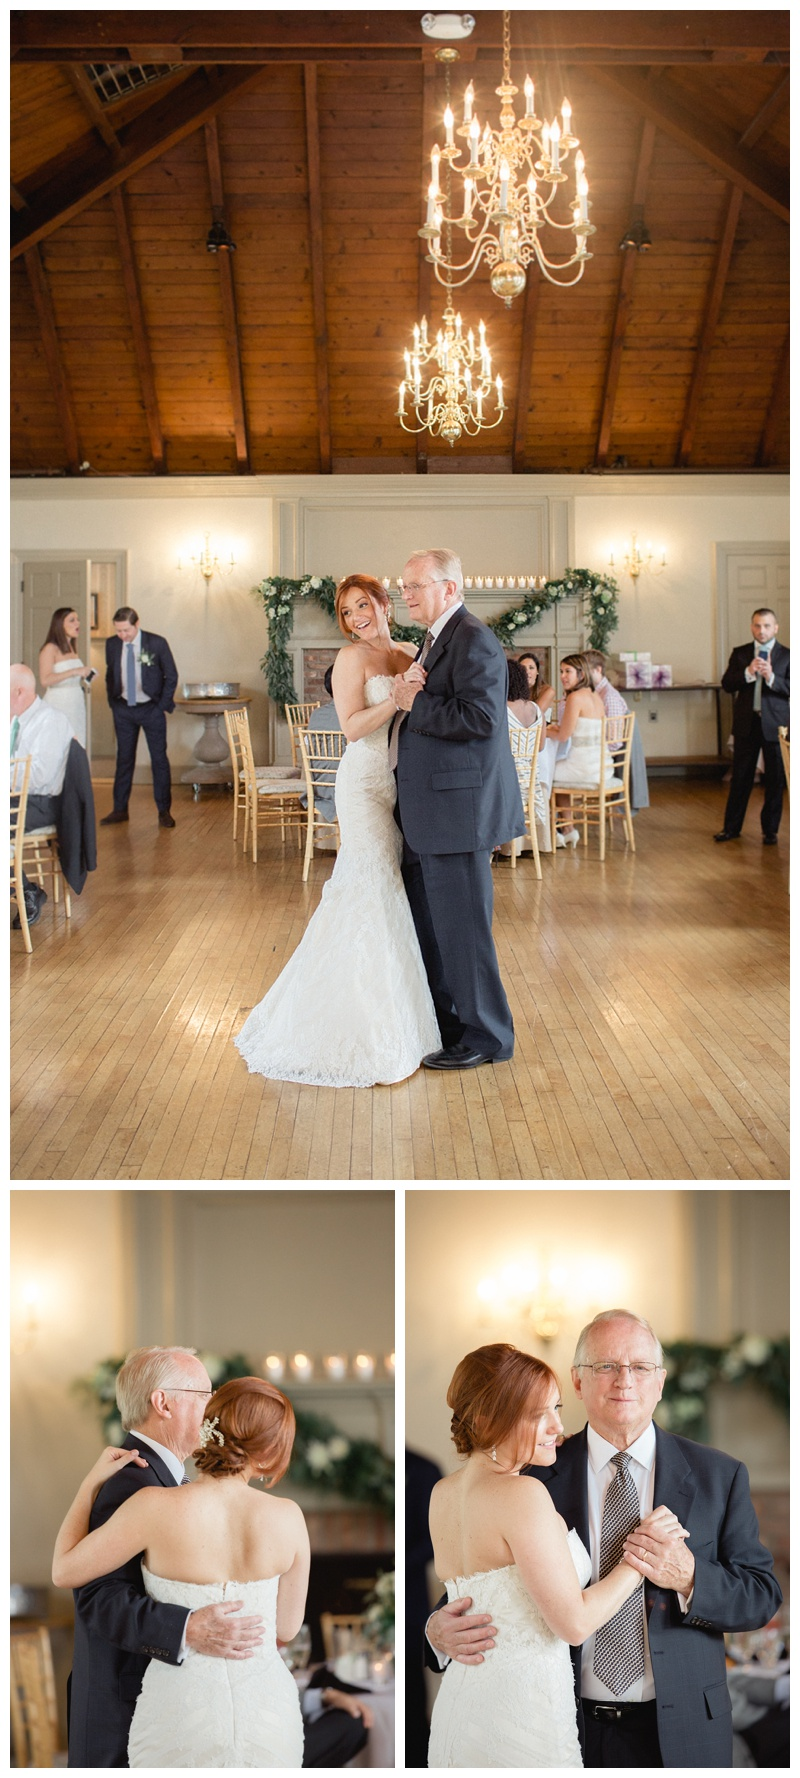 Wedding Celebration at The Old Field Club